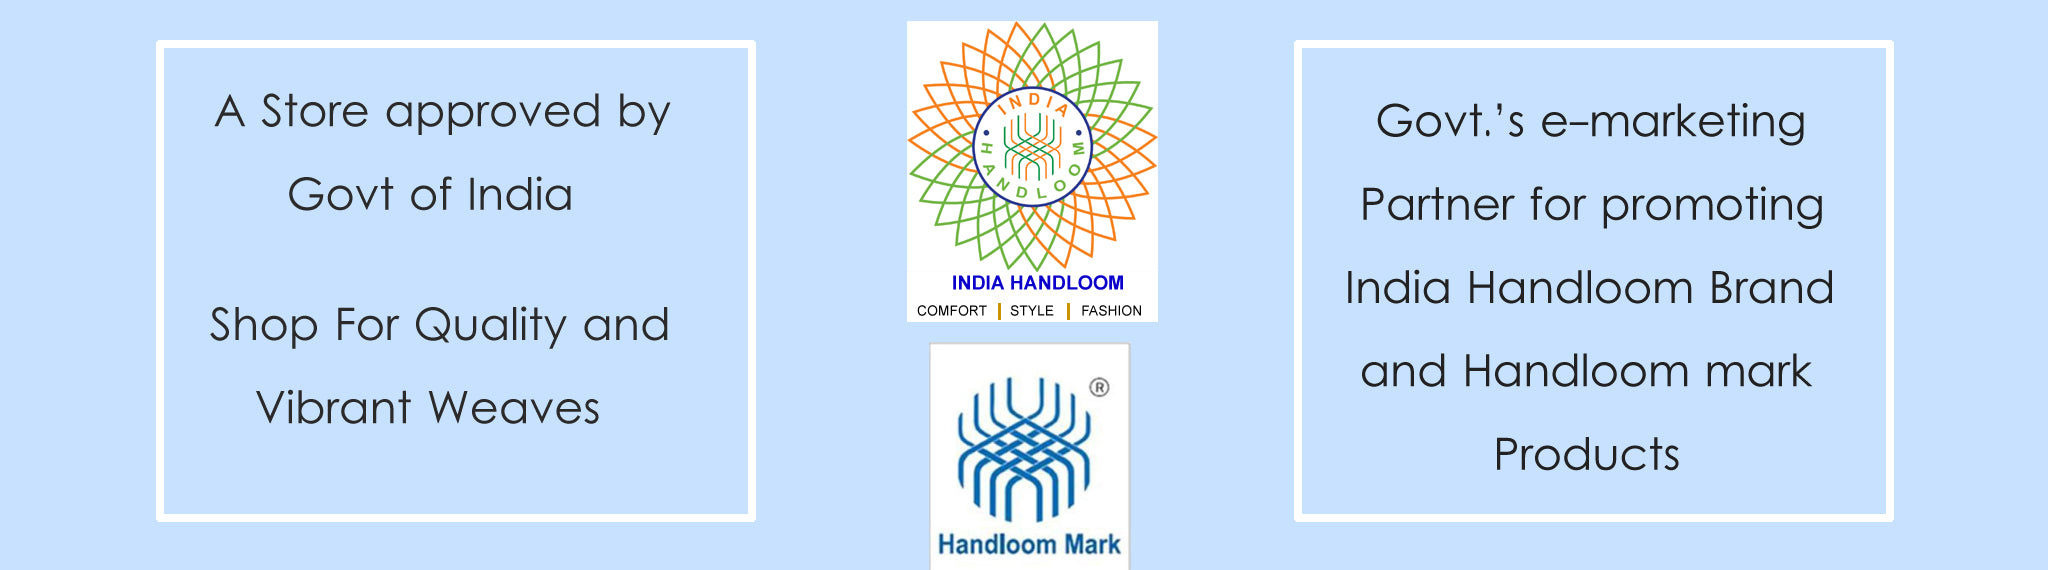 Govt.'s e-marketing Partner for promoting India Handloom Brand and Handloom mark Products